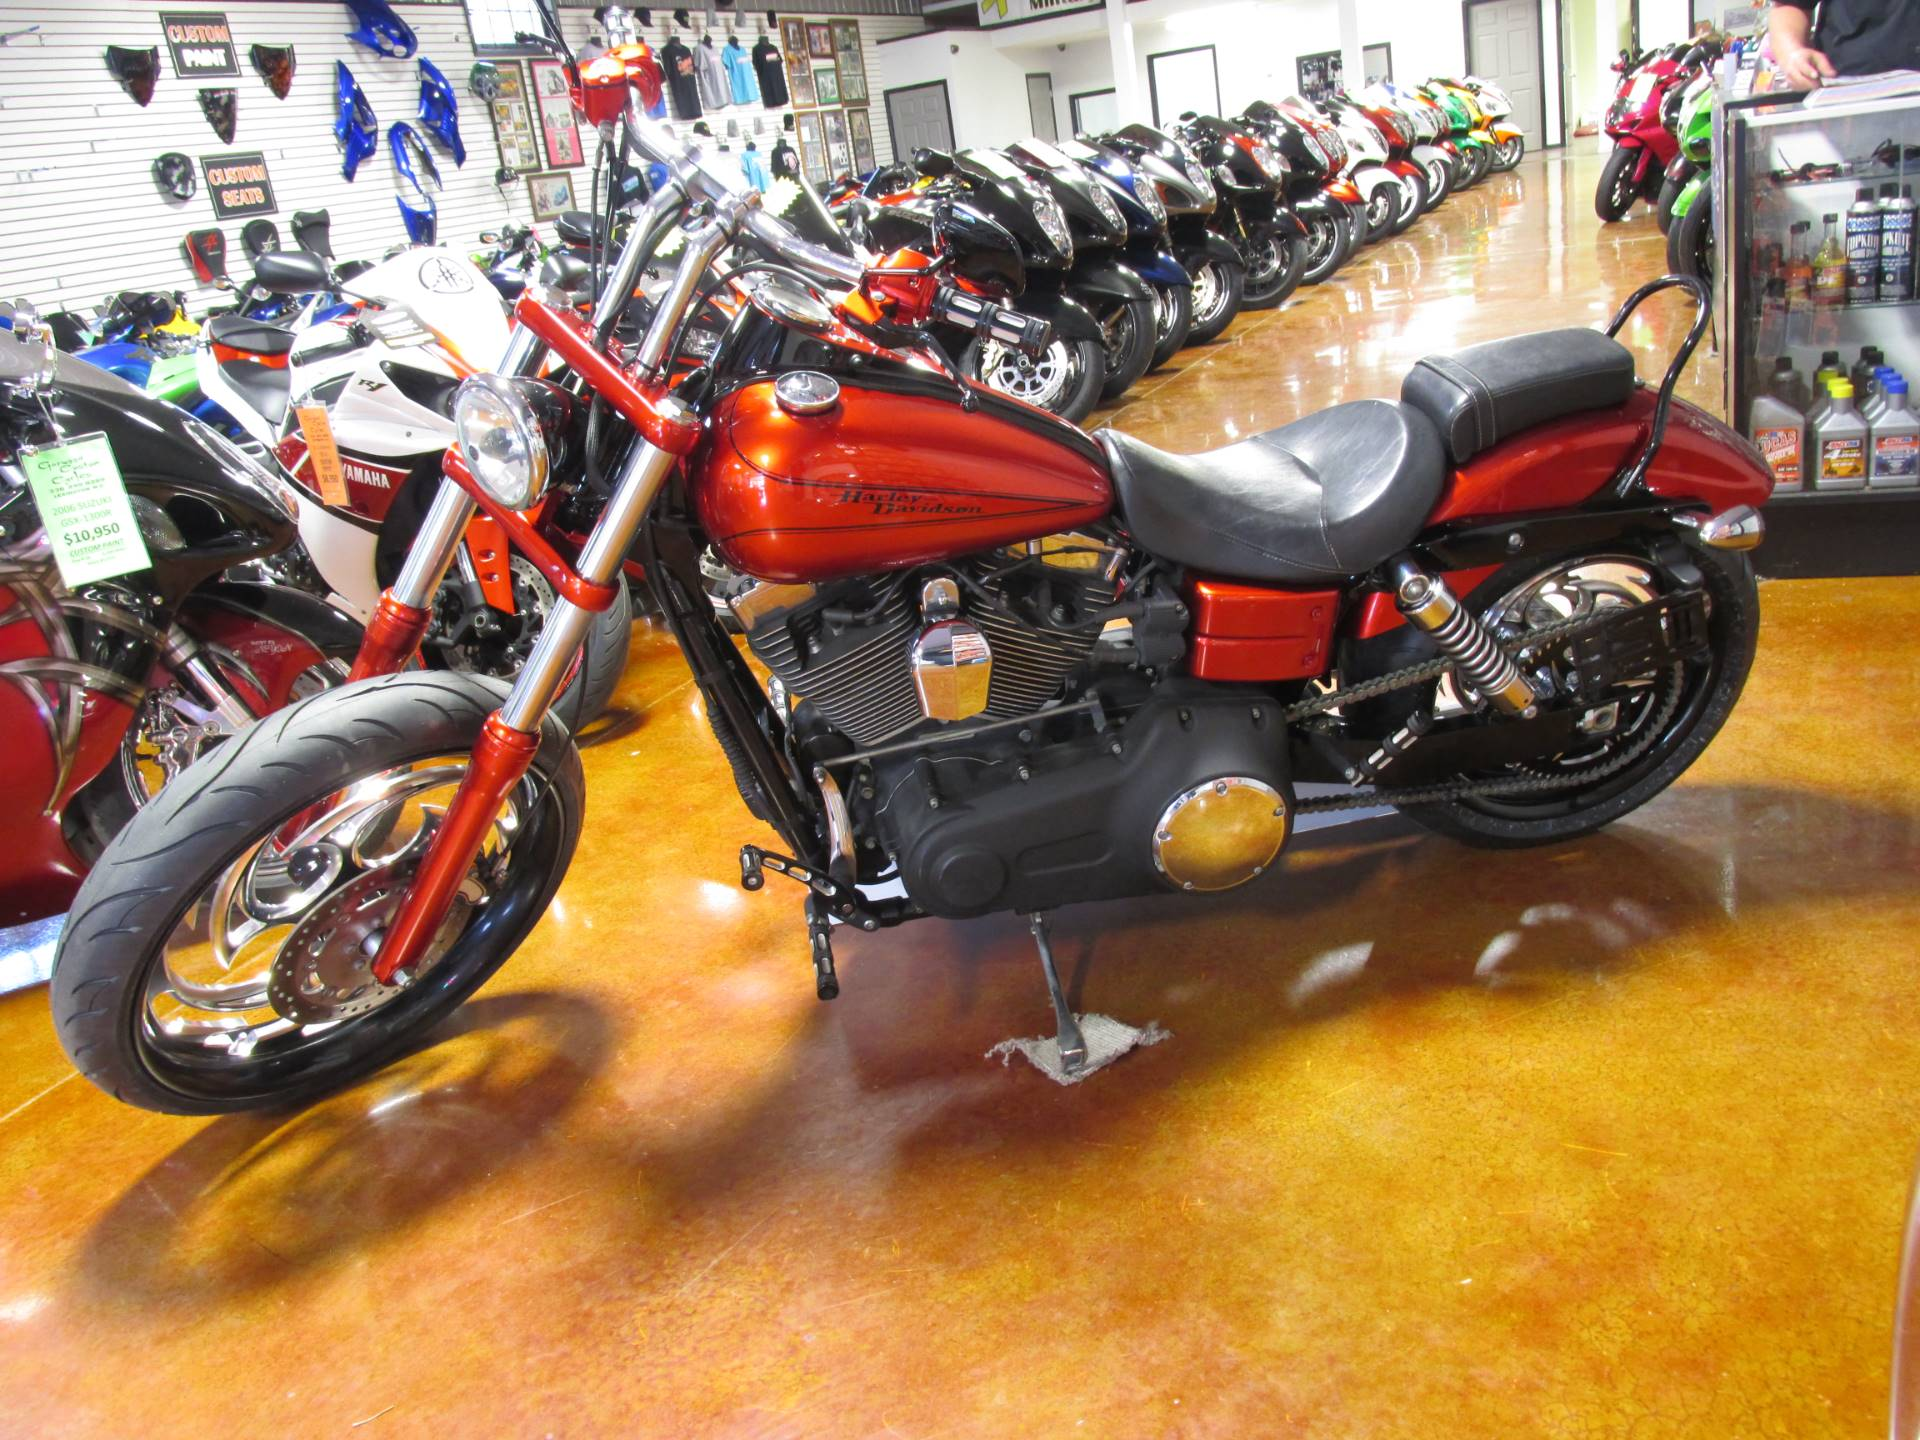 2011 Harley Davidson DYNA WIDE GLIDE in Lexington, North Carolina